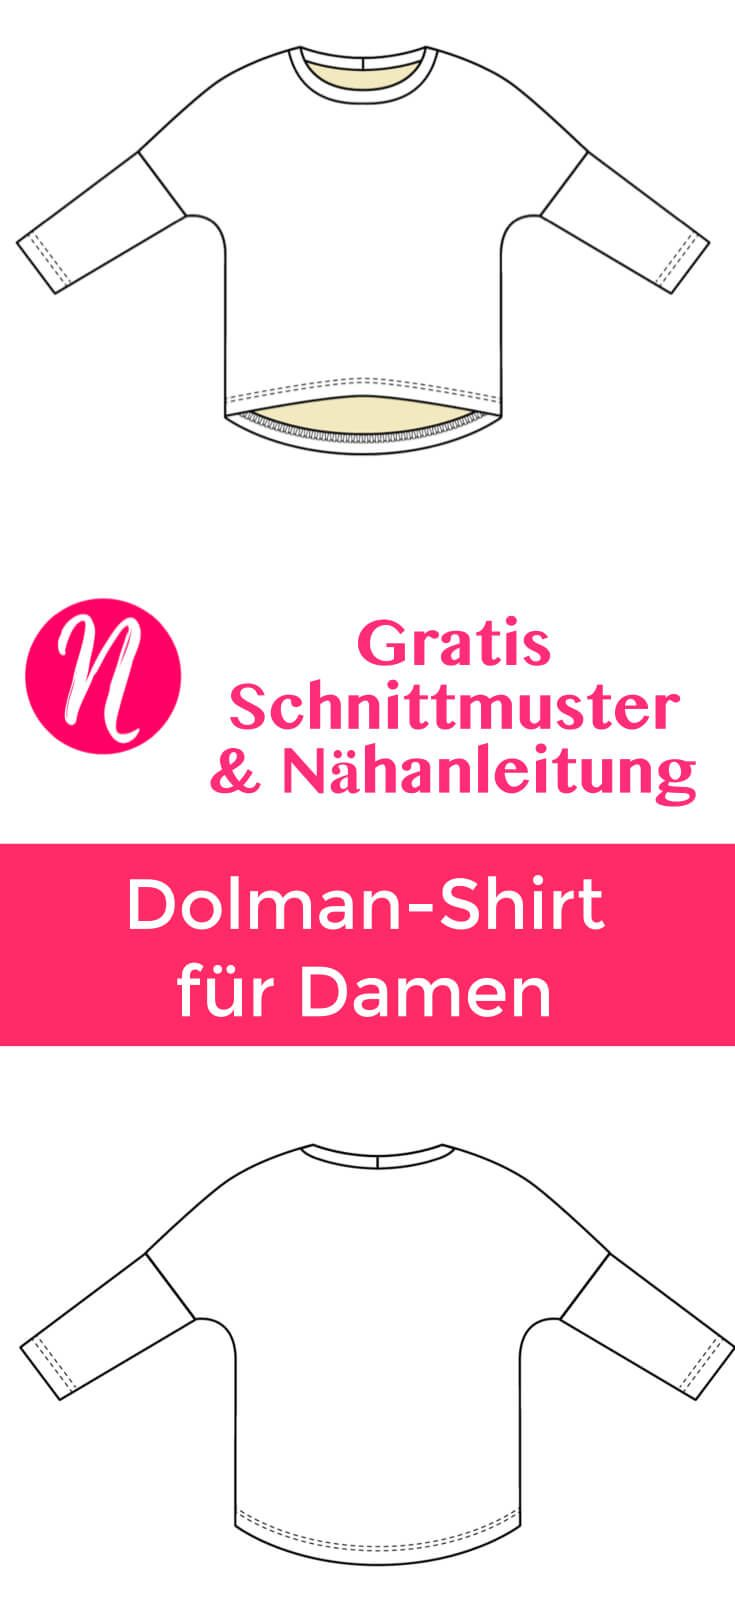 Oversized Shirt für Damen - Freebook | Pinterest | Nähanleitung ...